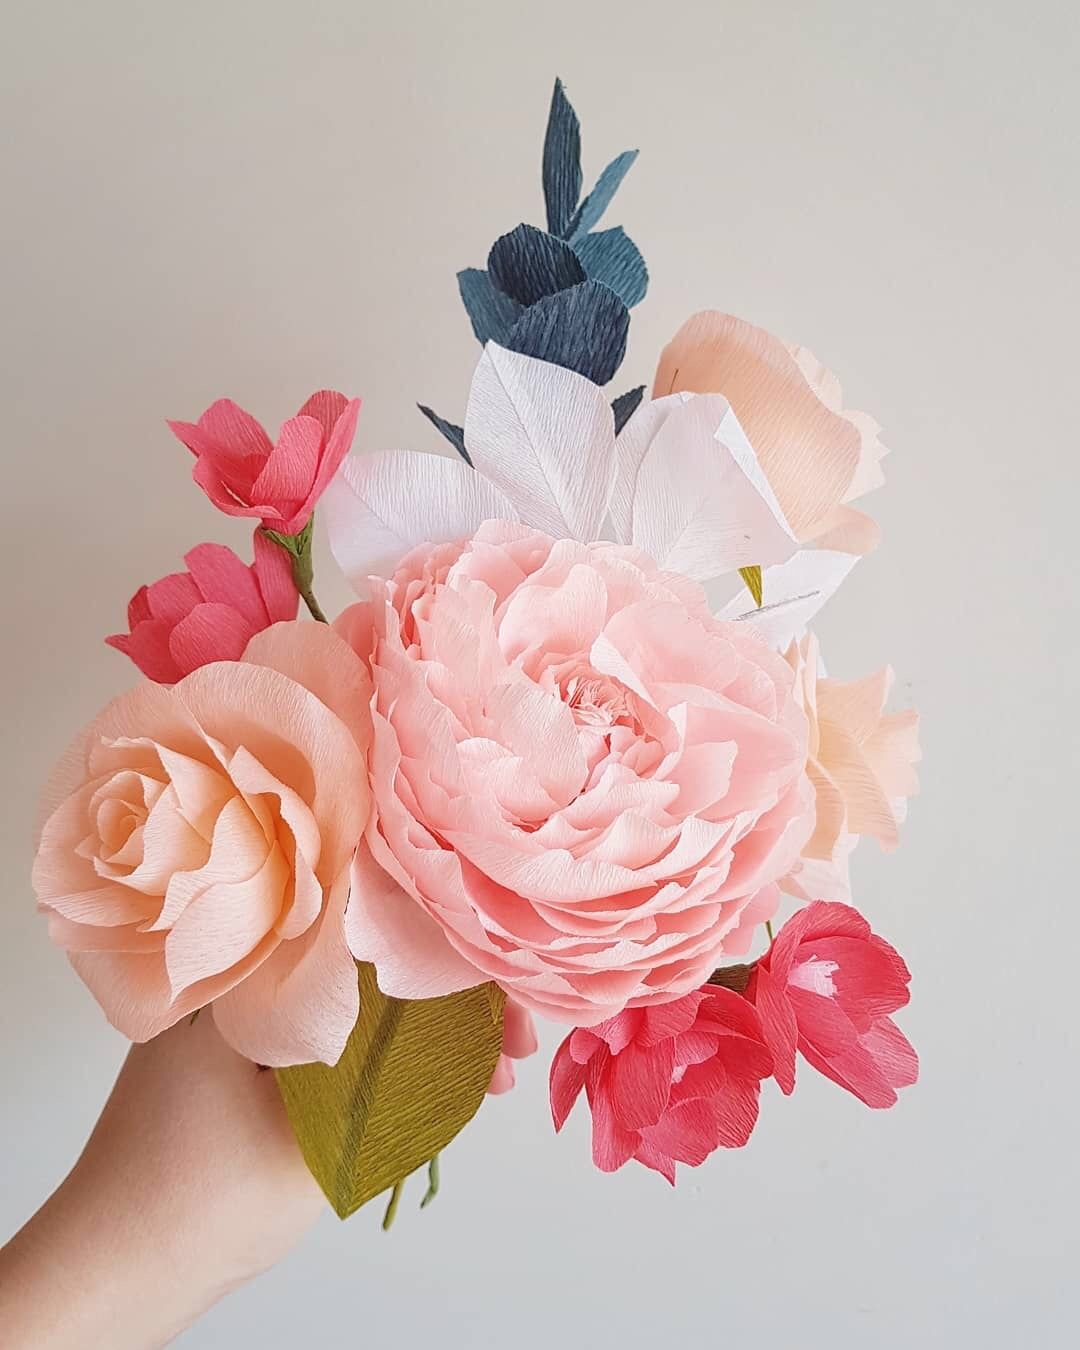 Paper Flower Bouquets Are An Amazing Everlasting Gift Idea Find 140 Colors In Our Online Store To Make S With Images Paper Flowers Diy Paper Flower Bouquet Paper Flowers